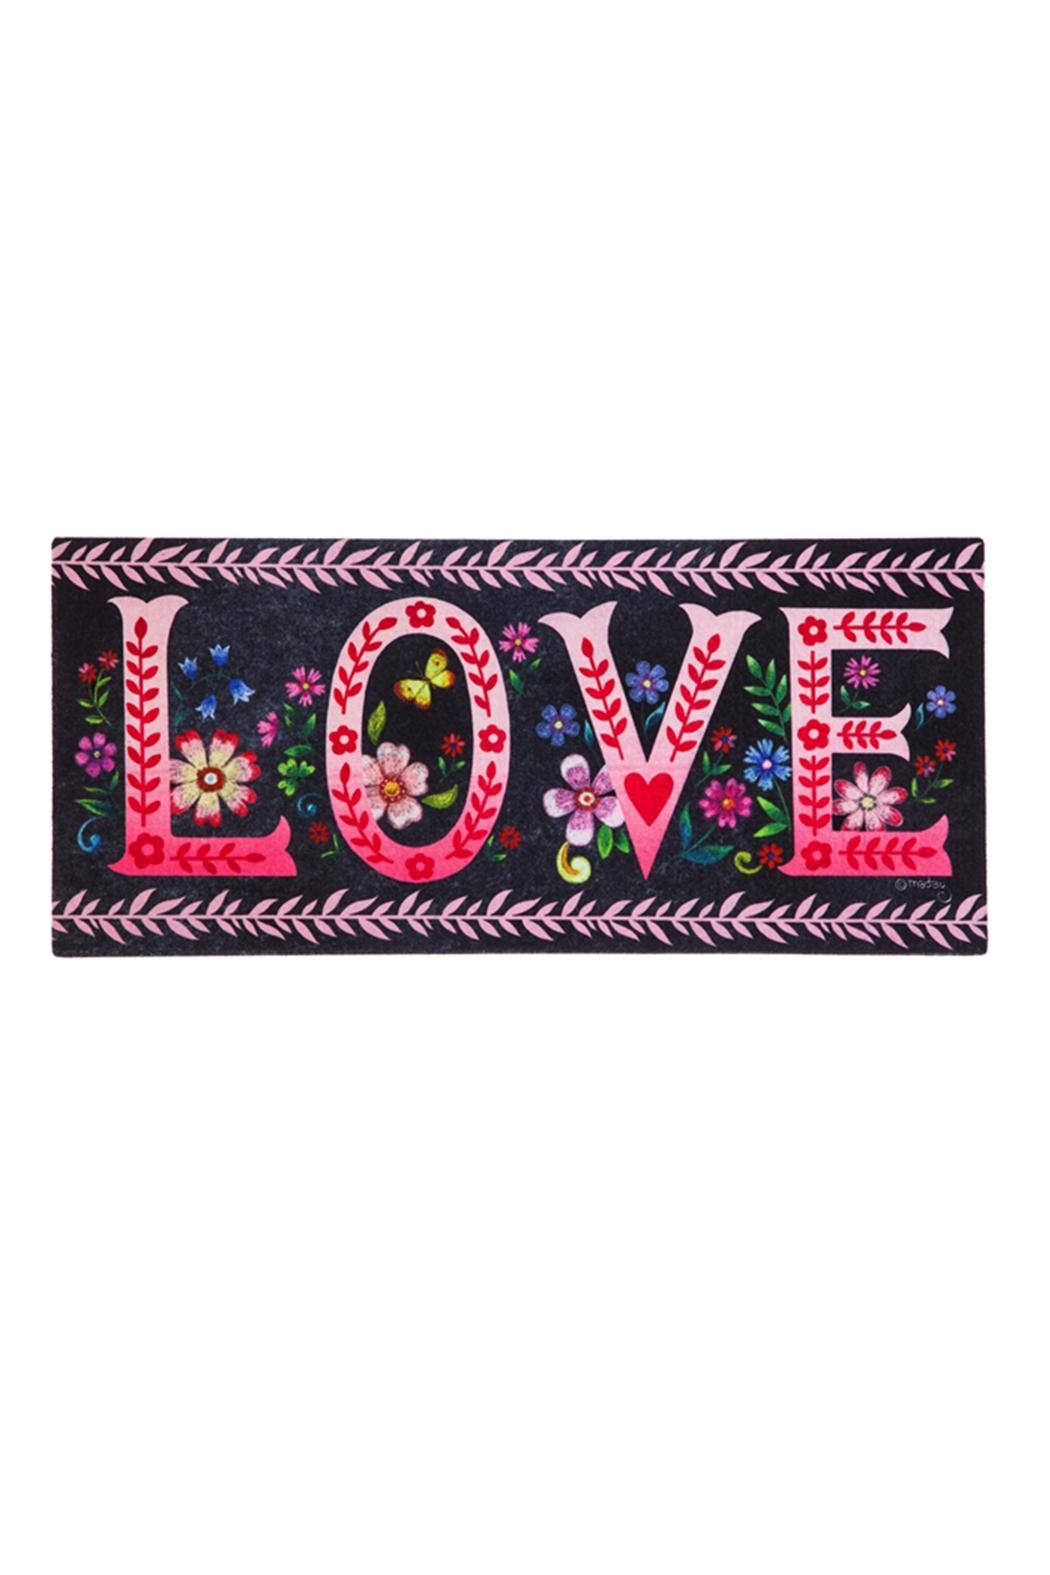 Evergreen Enterprises Wildflower Love Mat - Main Image